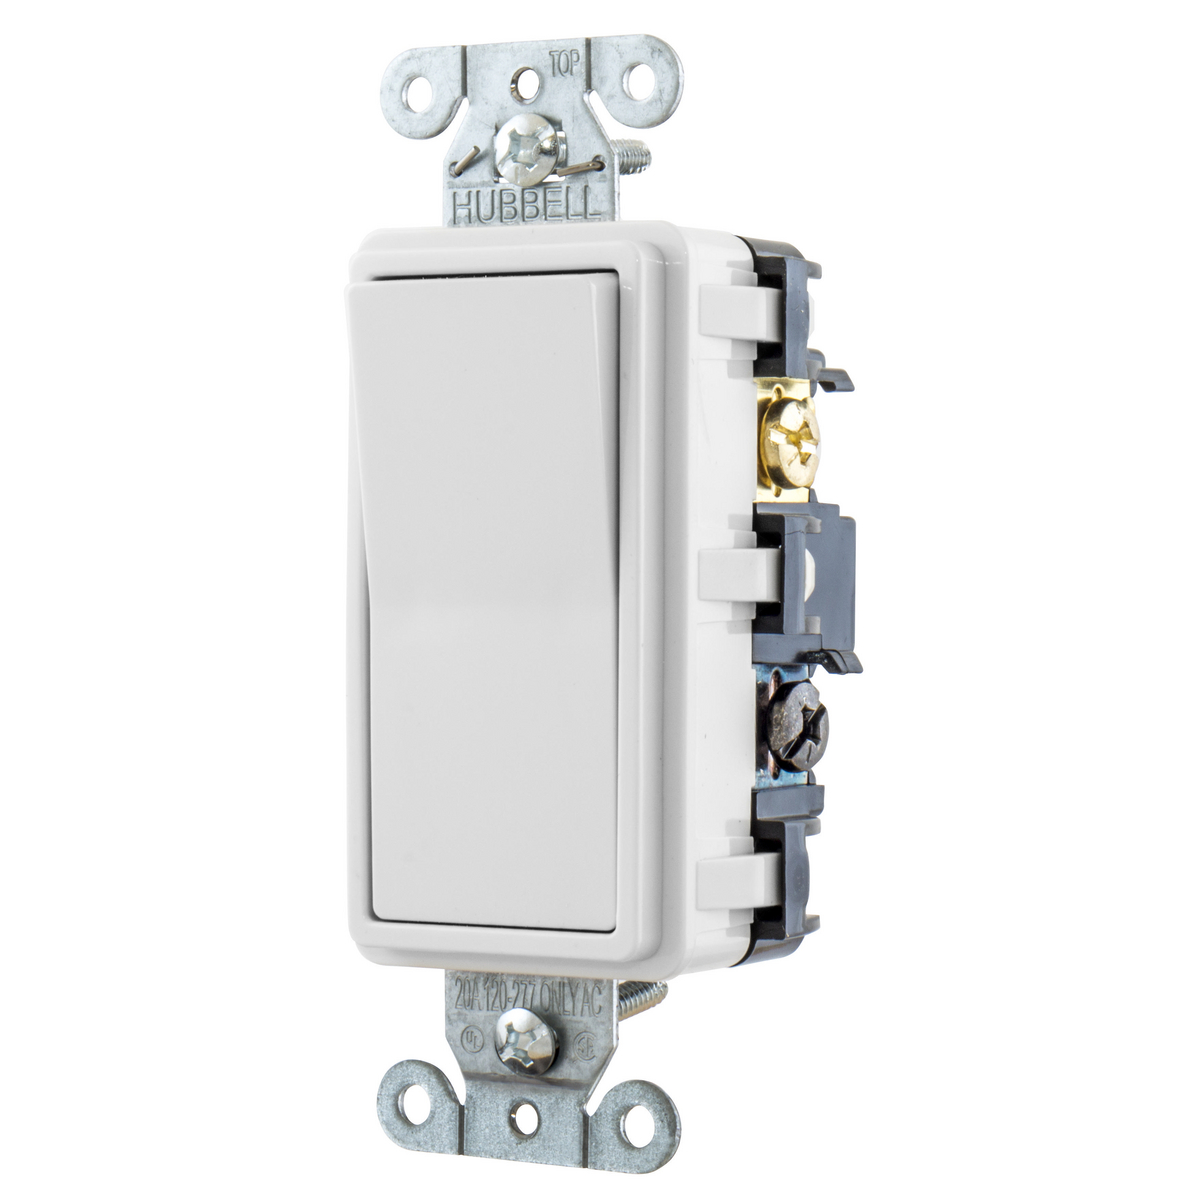 Hubbell Light Switch Wiring Diagram - Wiring Diagram